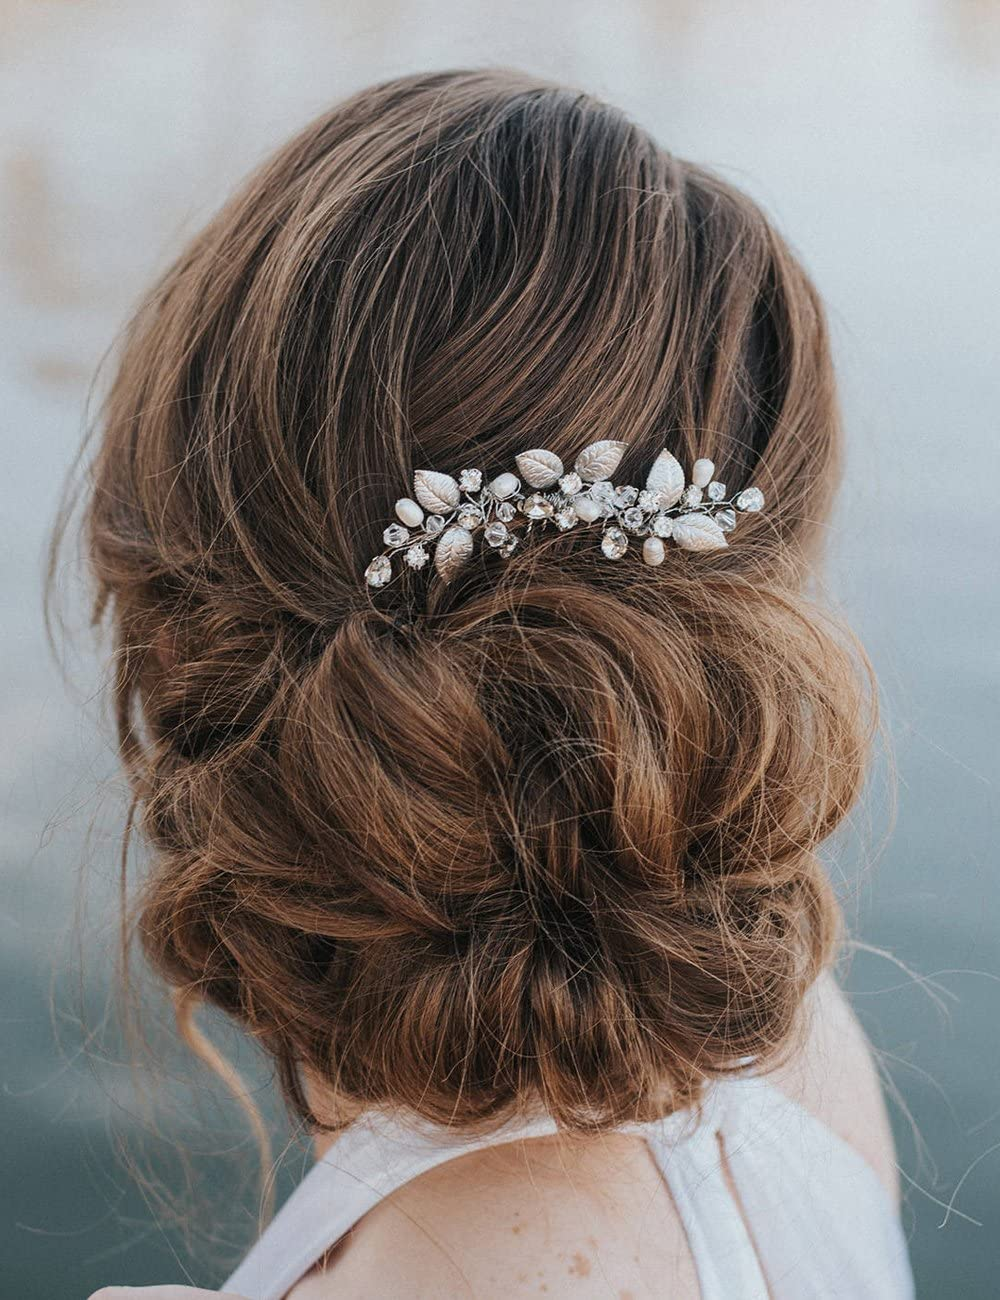 Kercisbeauty Wedding Bridal Bridesmaids Tiny Cute Leaf Crystal Beads Hair  Comb Slide Headpiece Long Curly Bun Hair Accessories for Prom(Rose Gold)